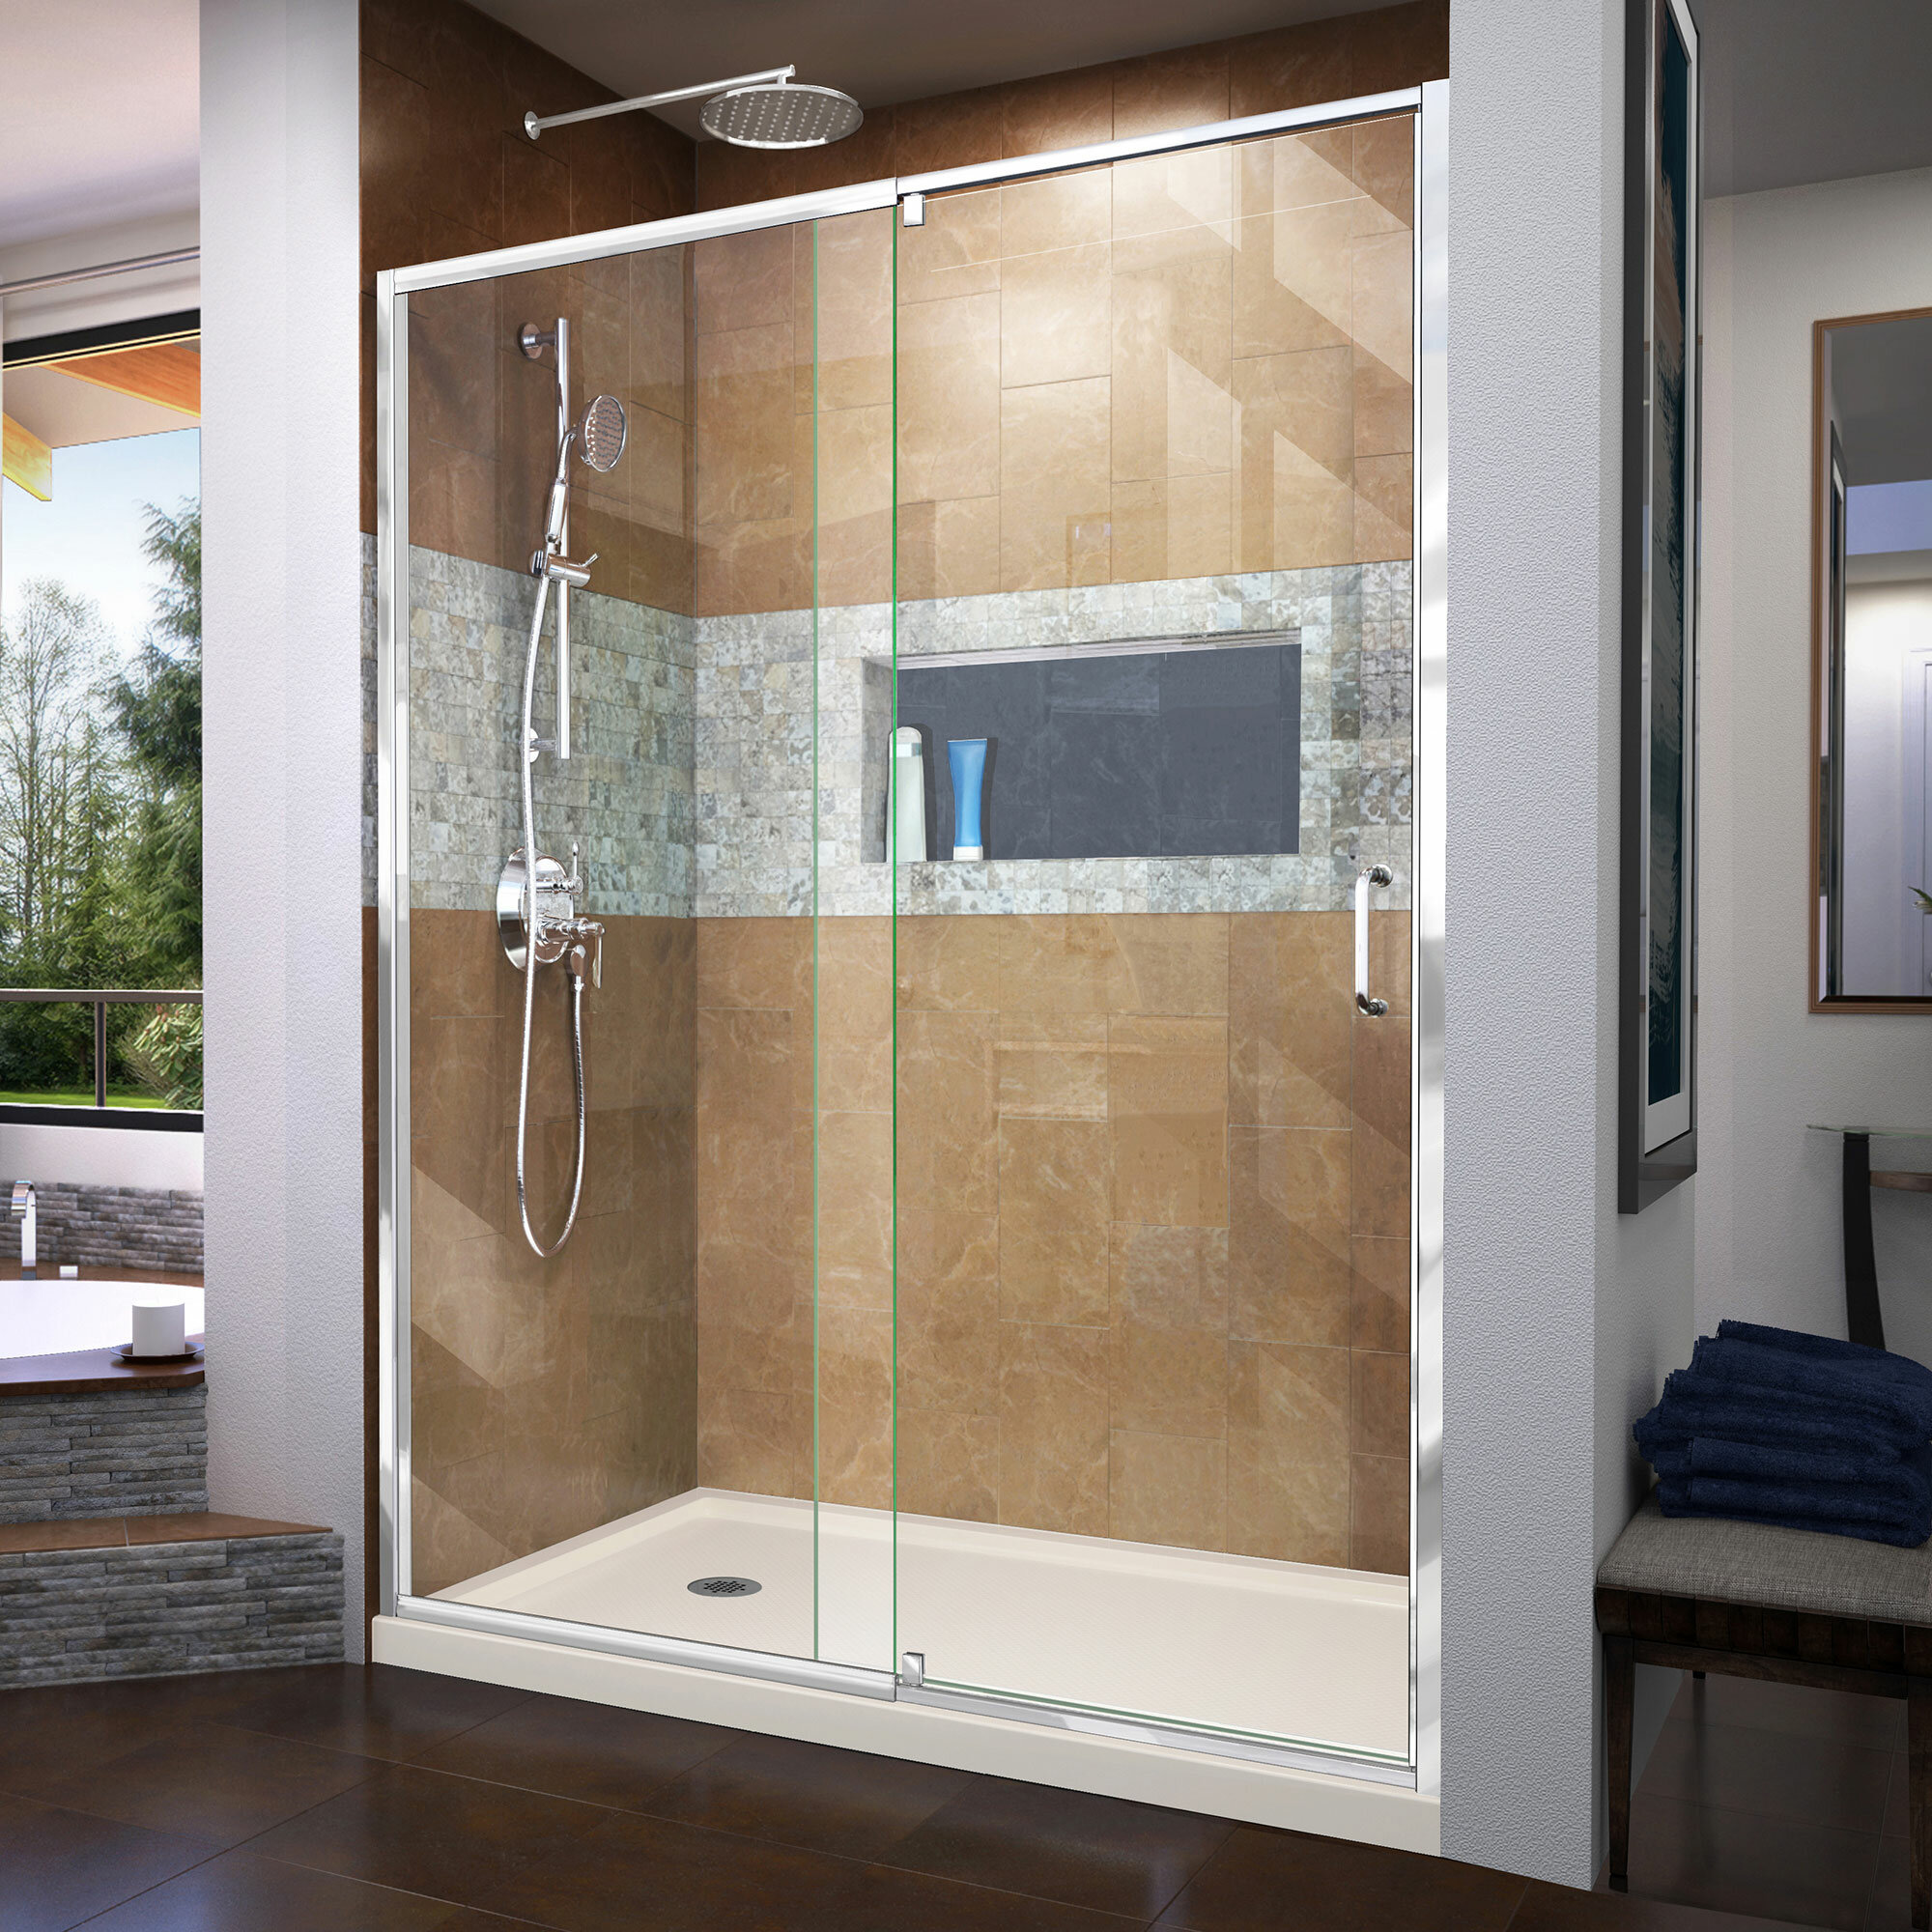 Dreamline Dreamline Flex 60 X 7475 Pivot Semi Frameless Shower